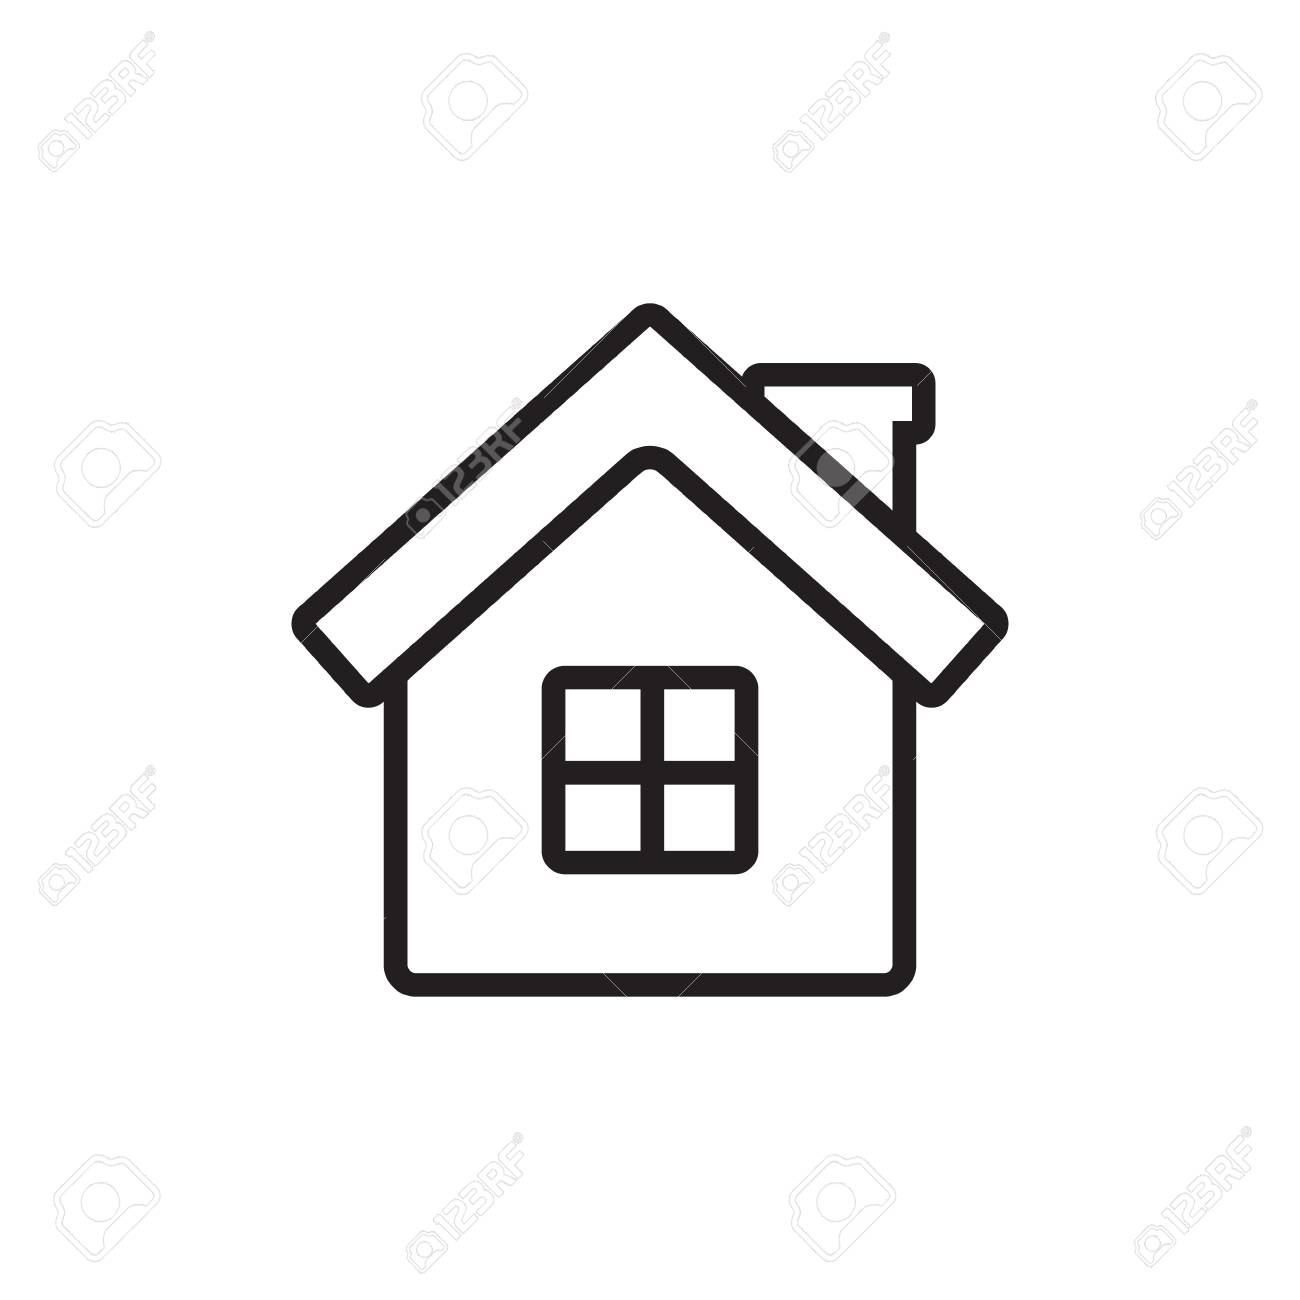 Home Vector Icon For Web Mobile Applications And Print Media Outline House Simple